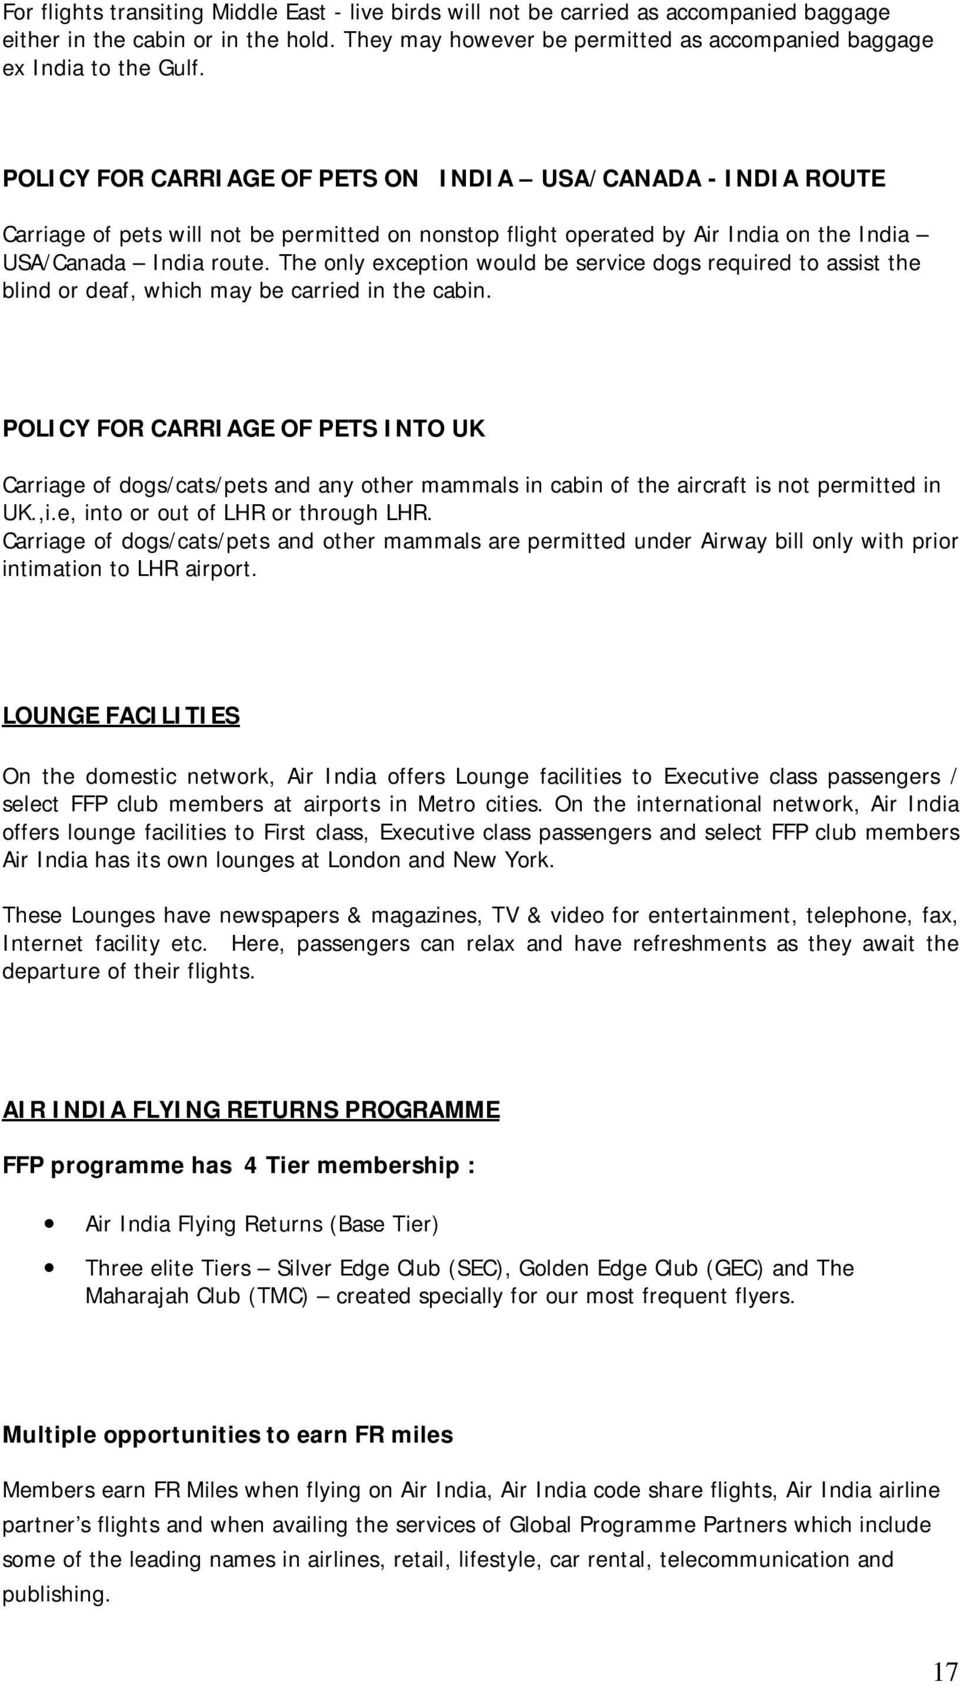 POLICY FOR CARRIAGE OF PETS ON INDIA USA/CANADA - INDIA ROUTE Carriage of pets will not be permitted on nonstop flight operated by Air India on the India USA/Canada India route.